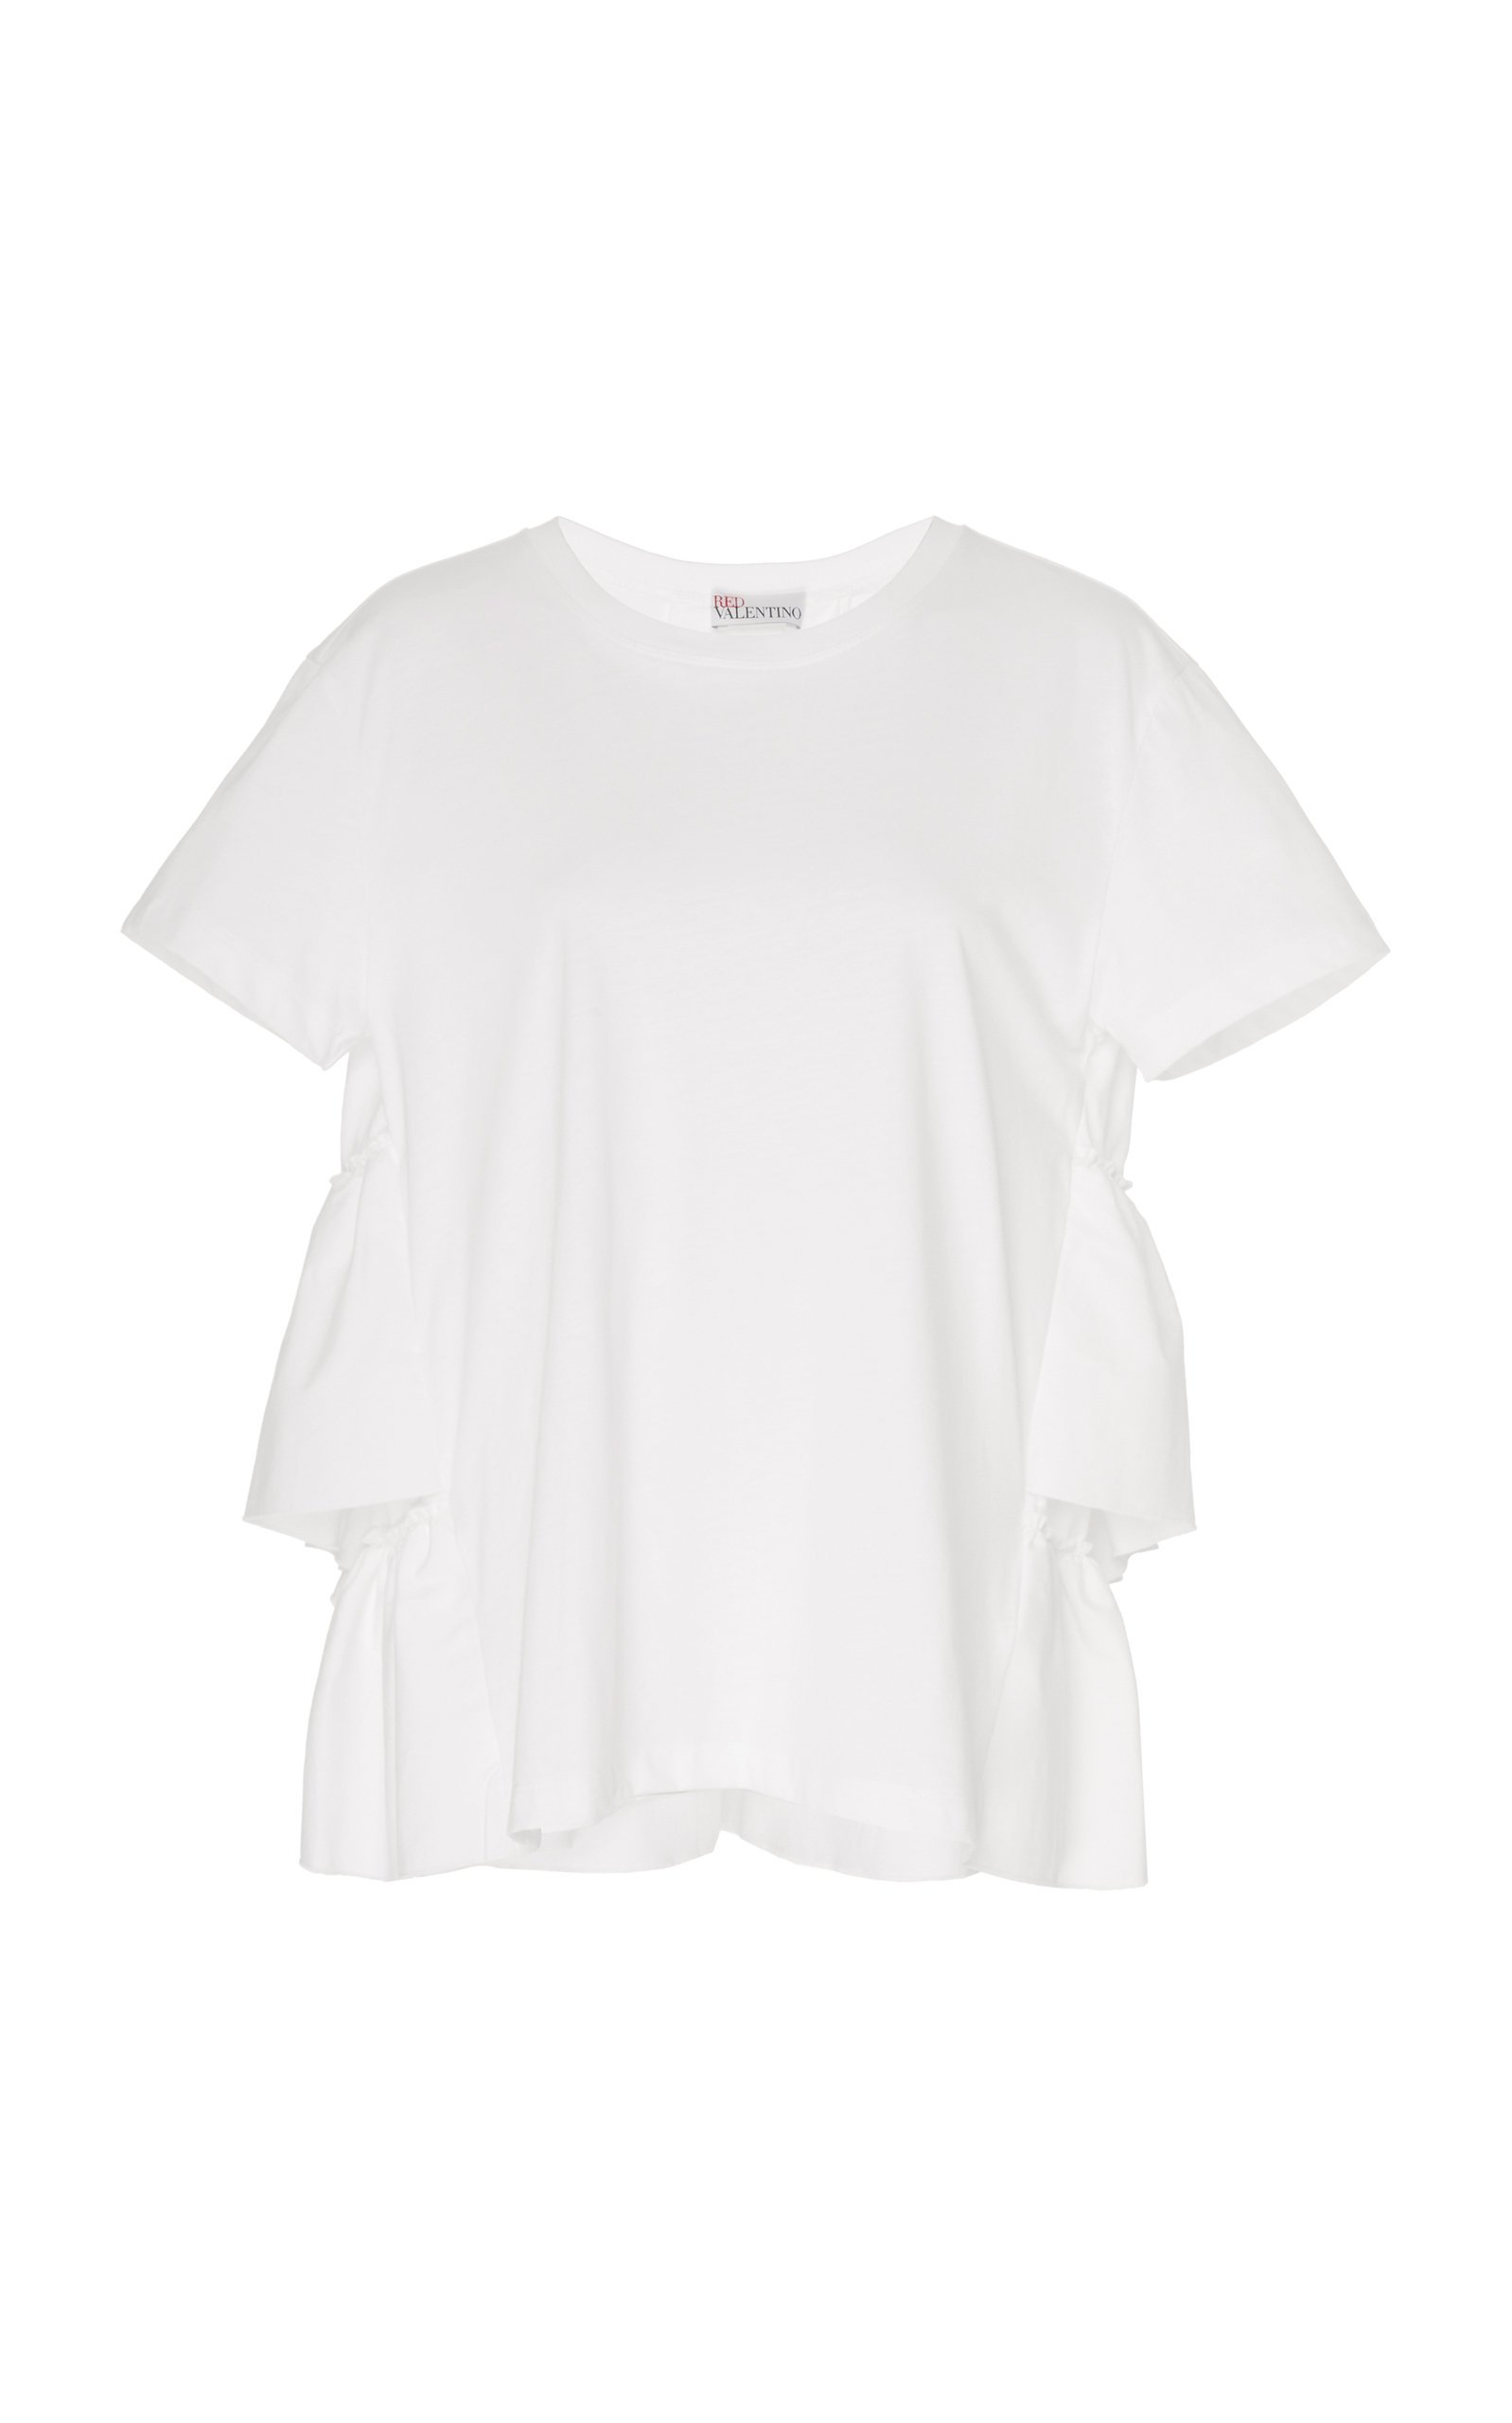 Red Valentino Oversized Cotton T-Shirt Size: XS